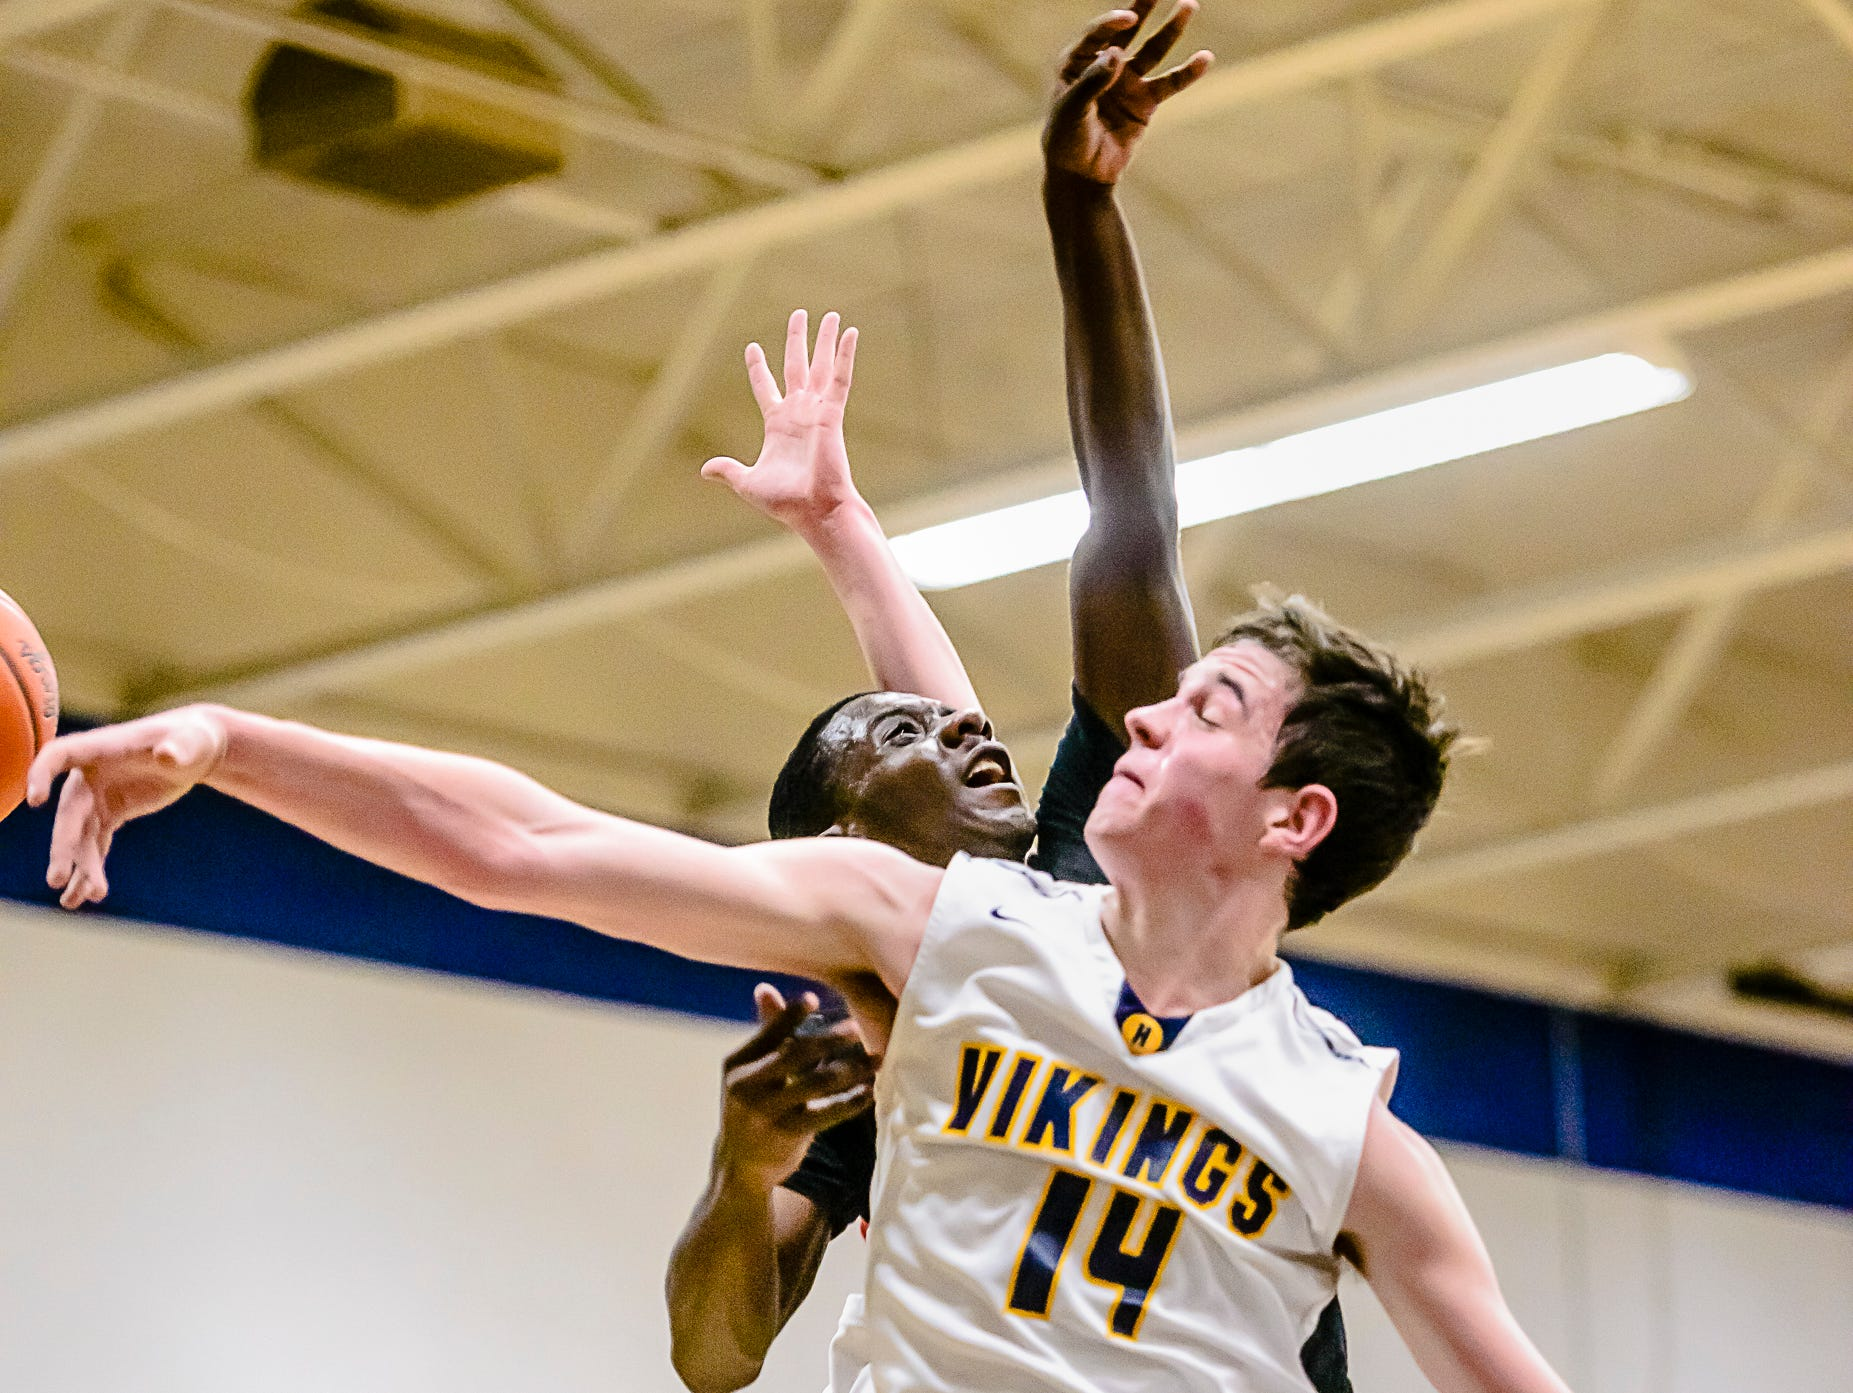 Avery McKinney ,14, of Haslett swats away a shot attempt by Keshawn Harris of Waverly during their game Friday January 20, 2017 in Haslett. KEVIN W. FOWLER PHOTO